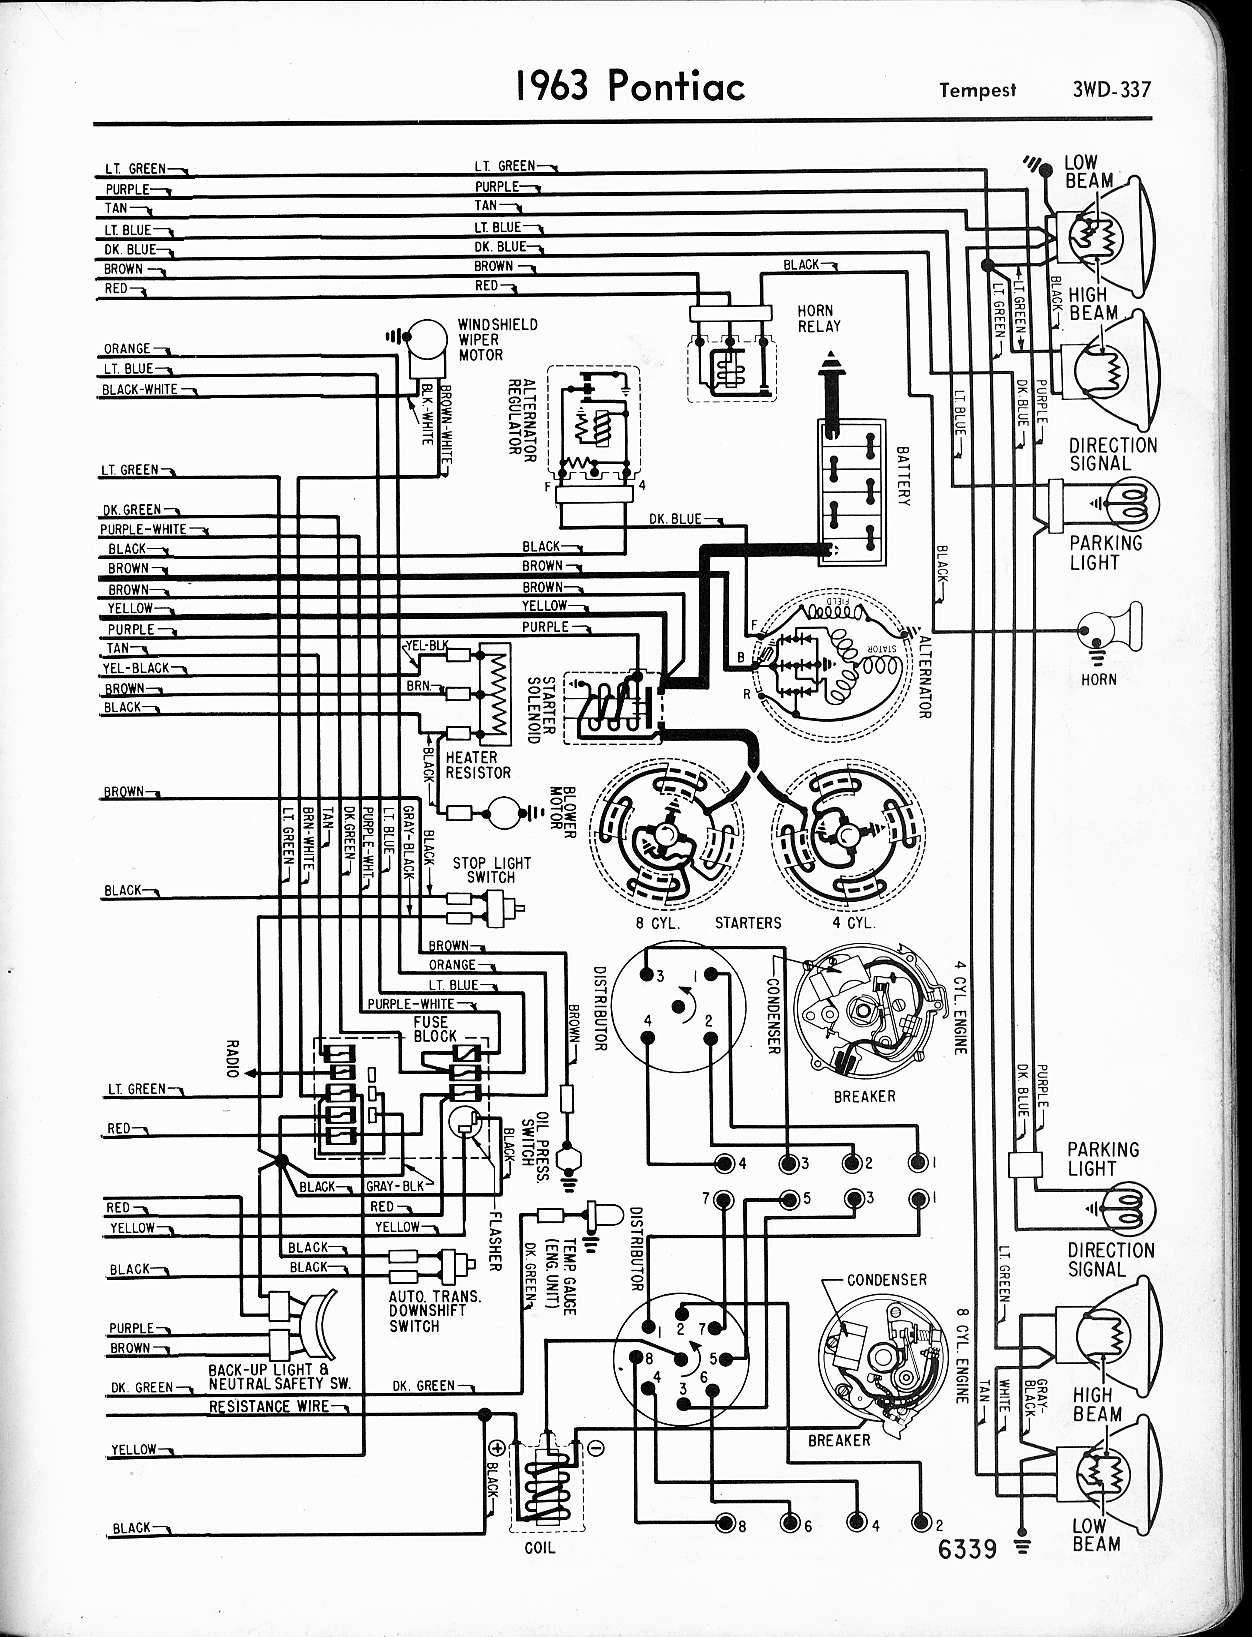 1996 Chrysler Lhs Wiring Diagram Wiring Diagram Schema Disk Trial Disk Trial Ferdinandeo It